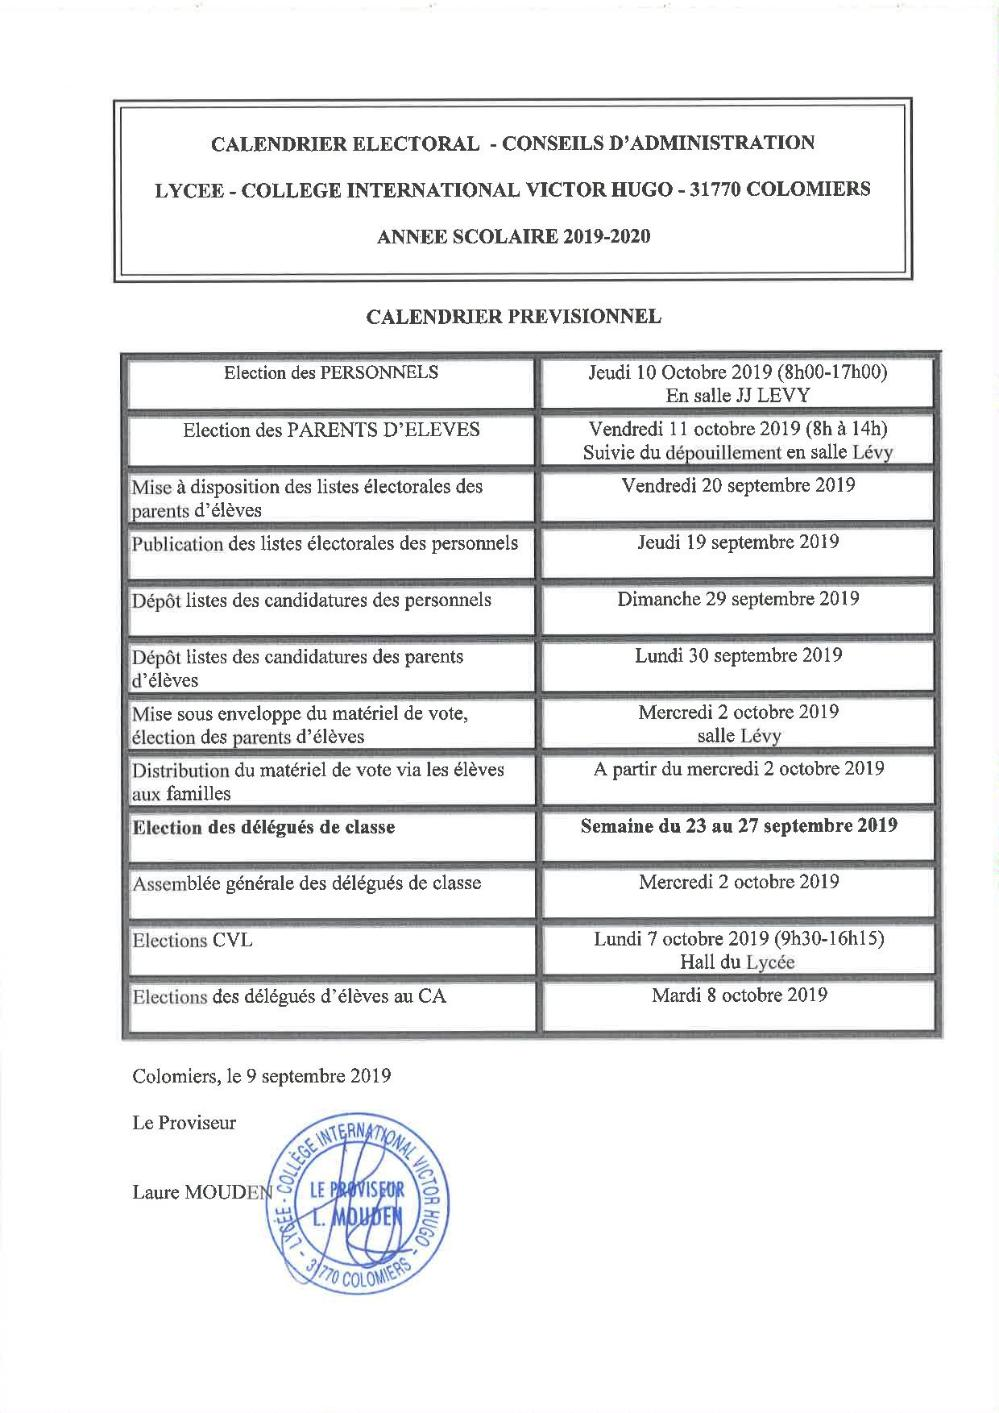 Calendrier Election 2019.Calendrier Electoral 2019 V2 Actualites Lycee General Et